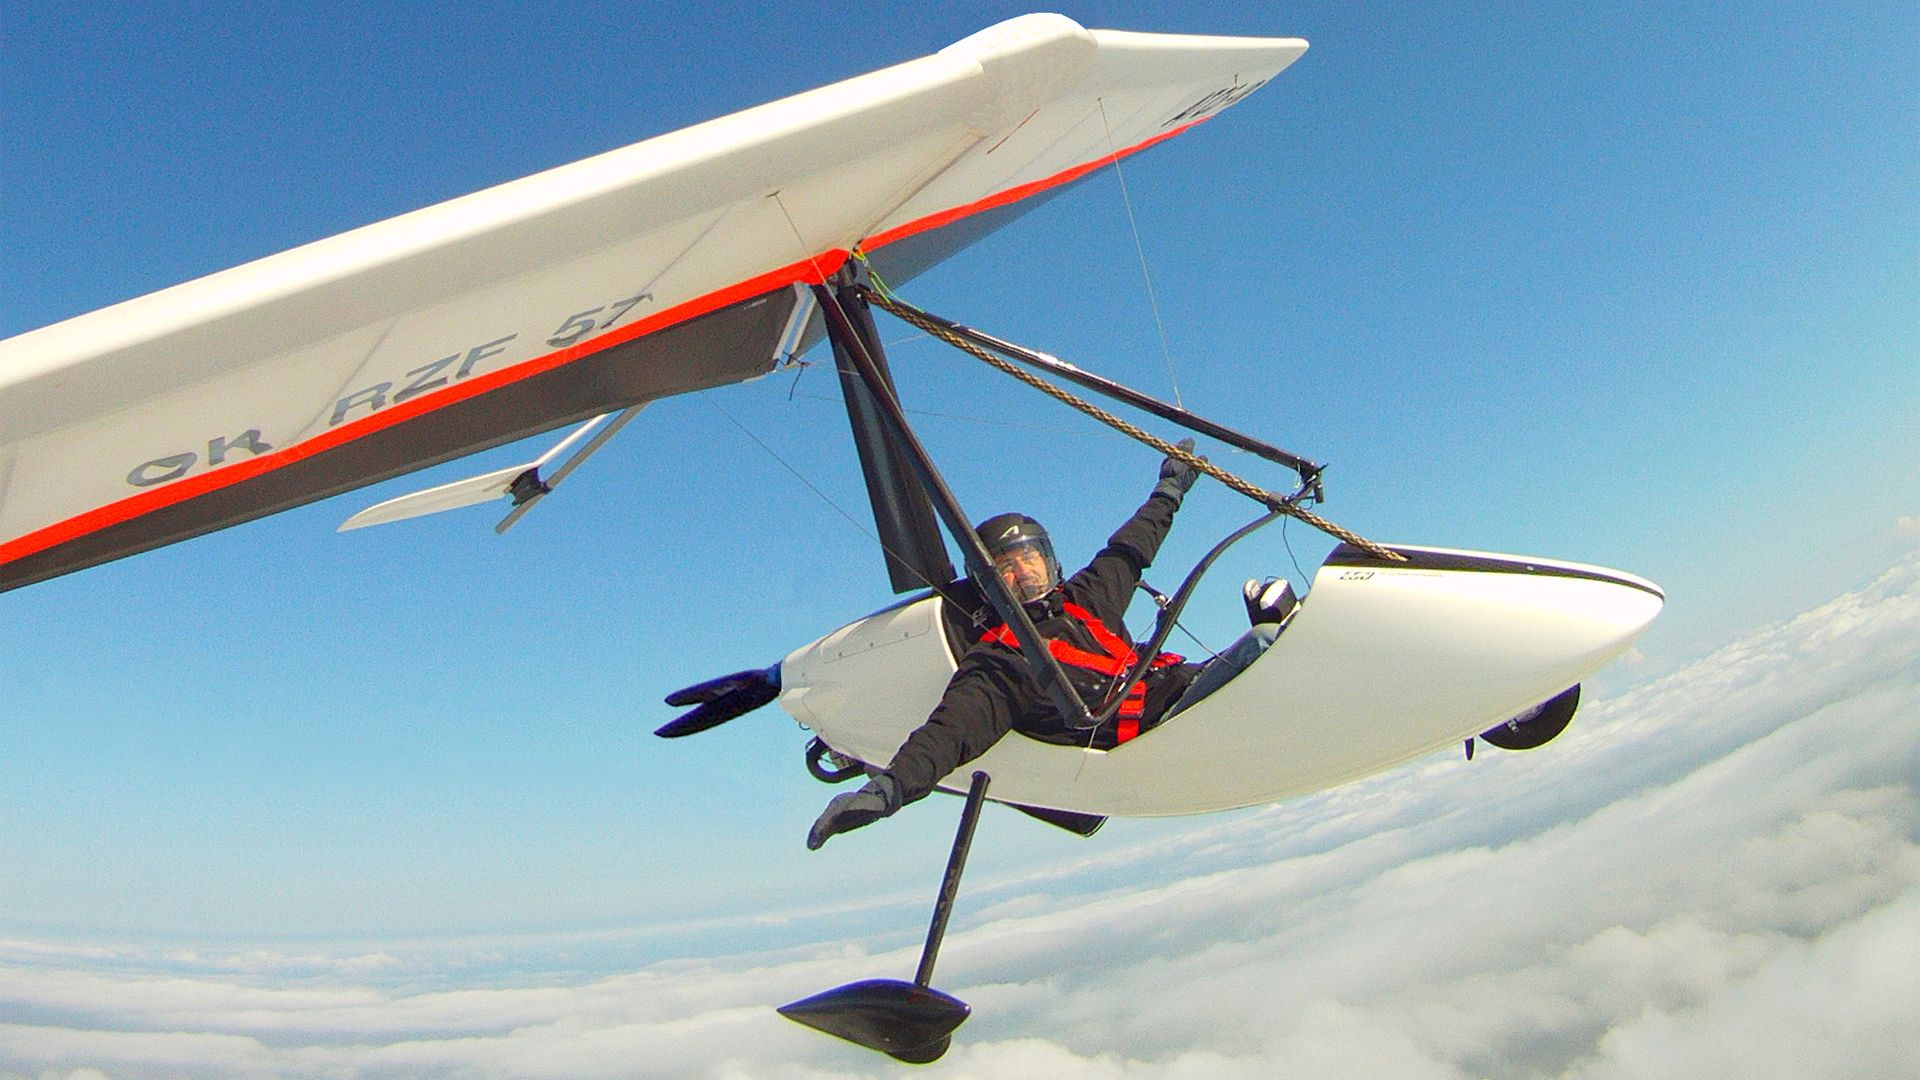 Ultralight design - Where you feel hands as your wings